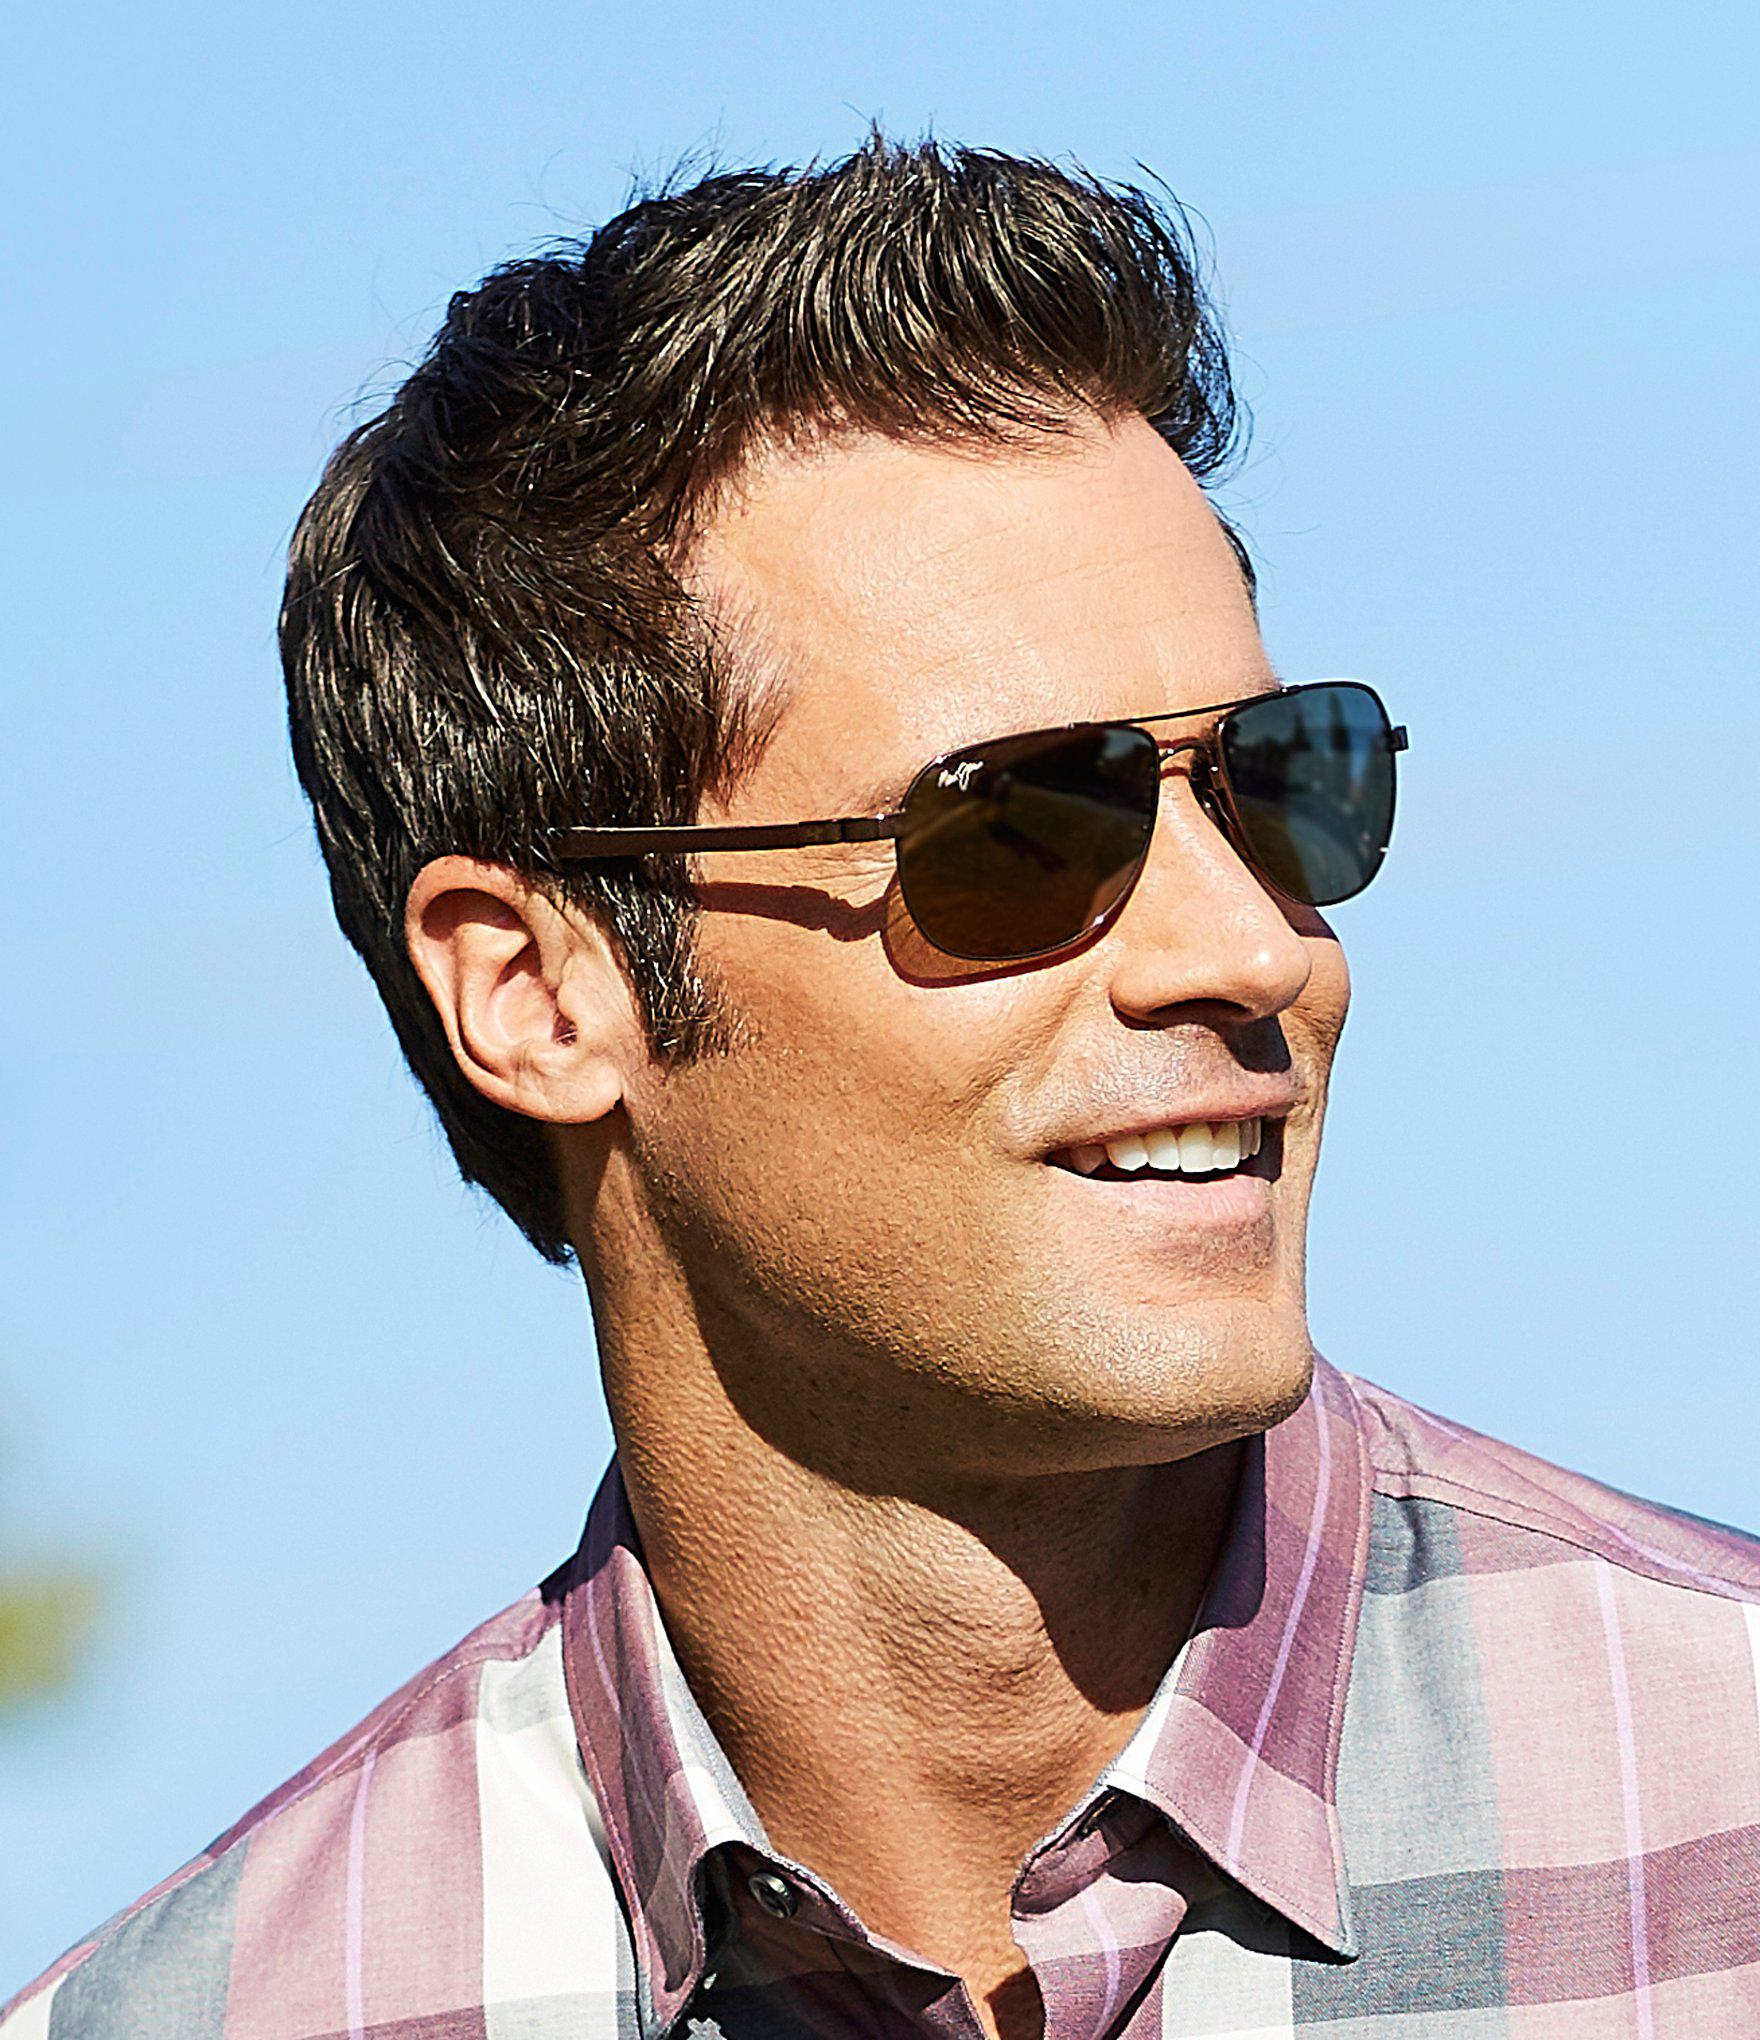 great prices promo code official supplier Copper Guardrails Polarized Glare And Uv Protection Sunglasses